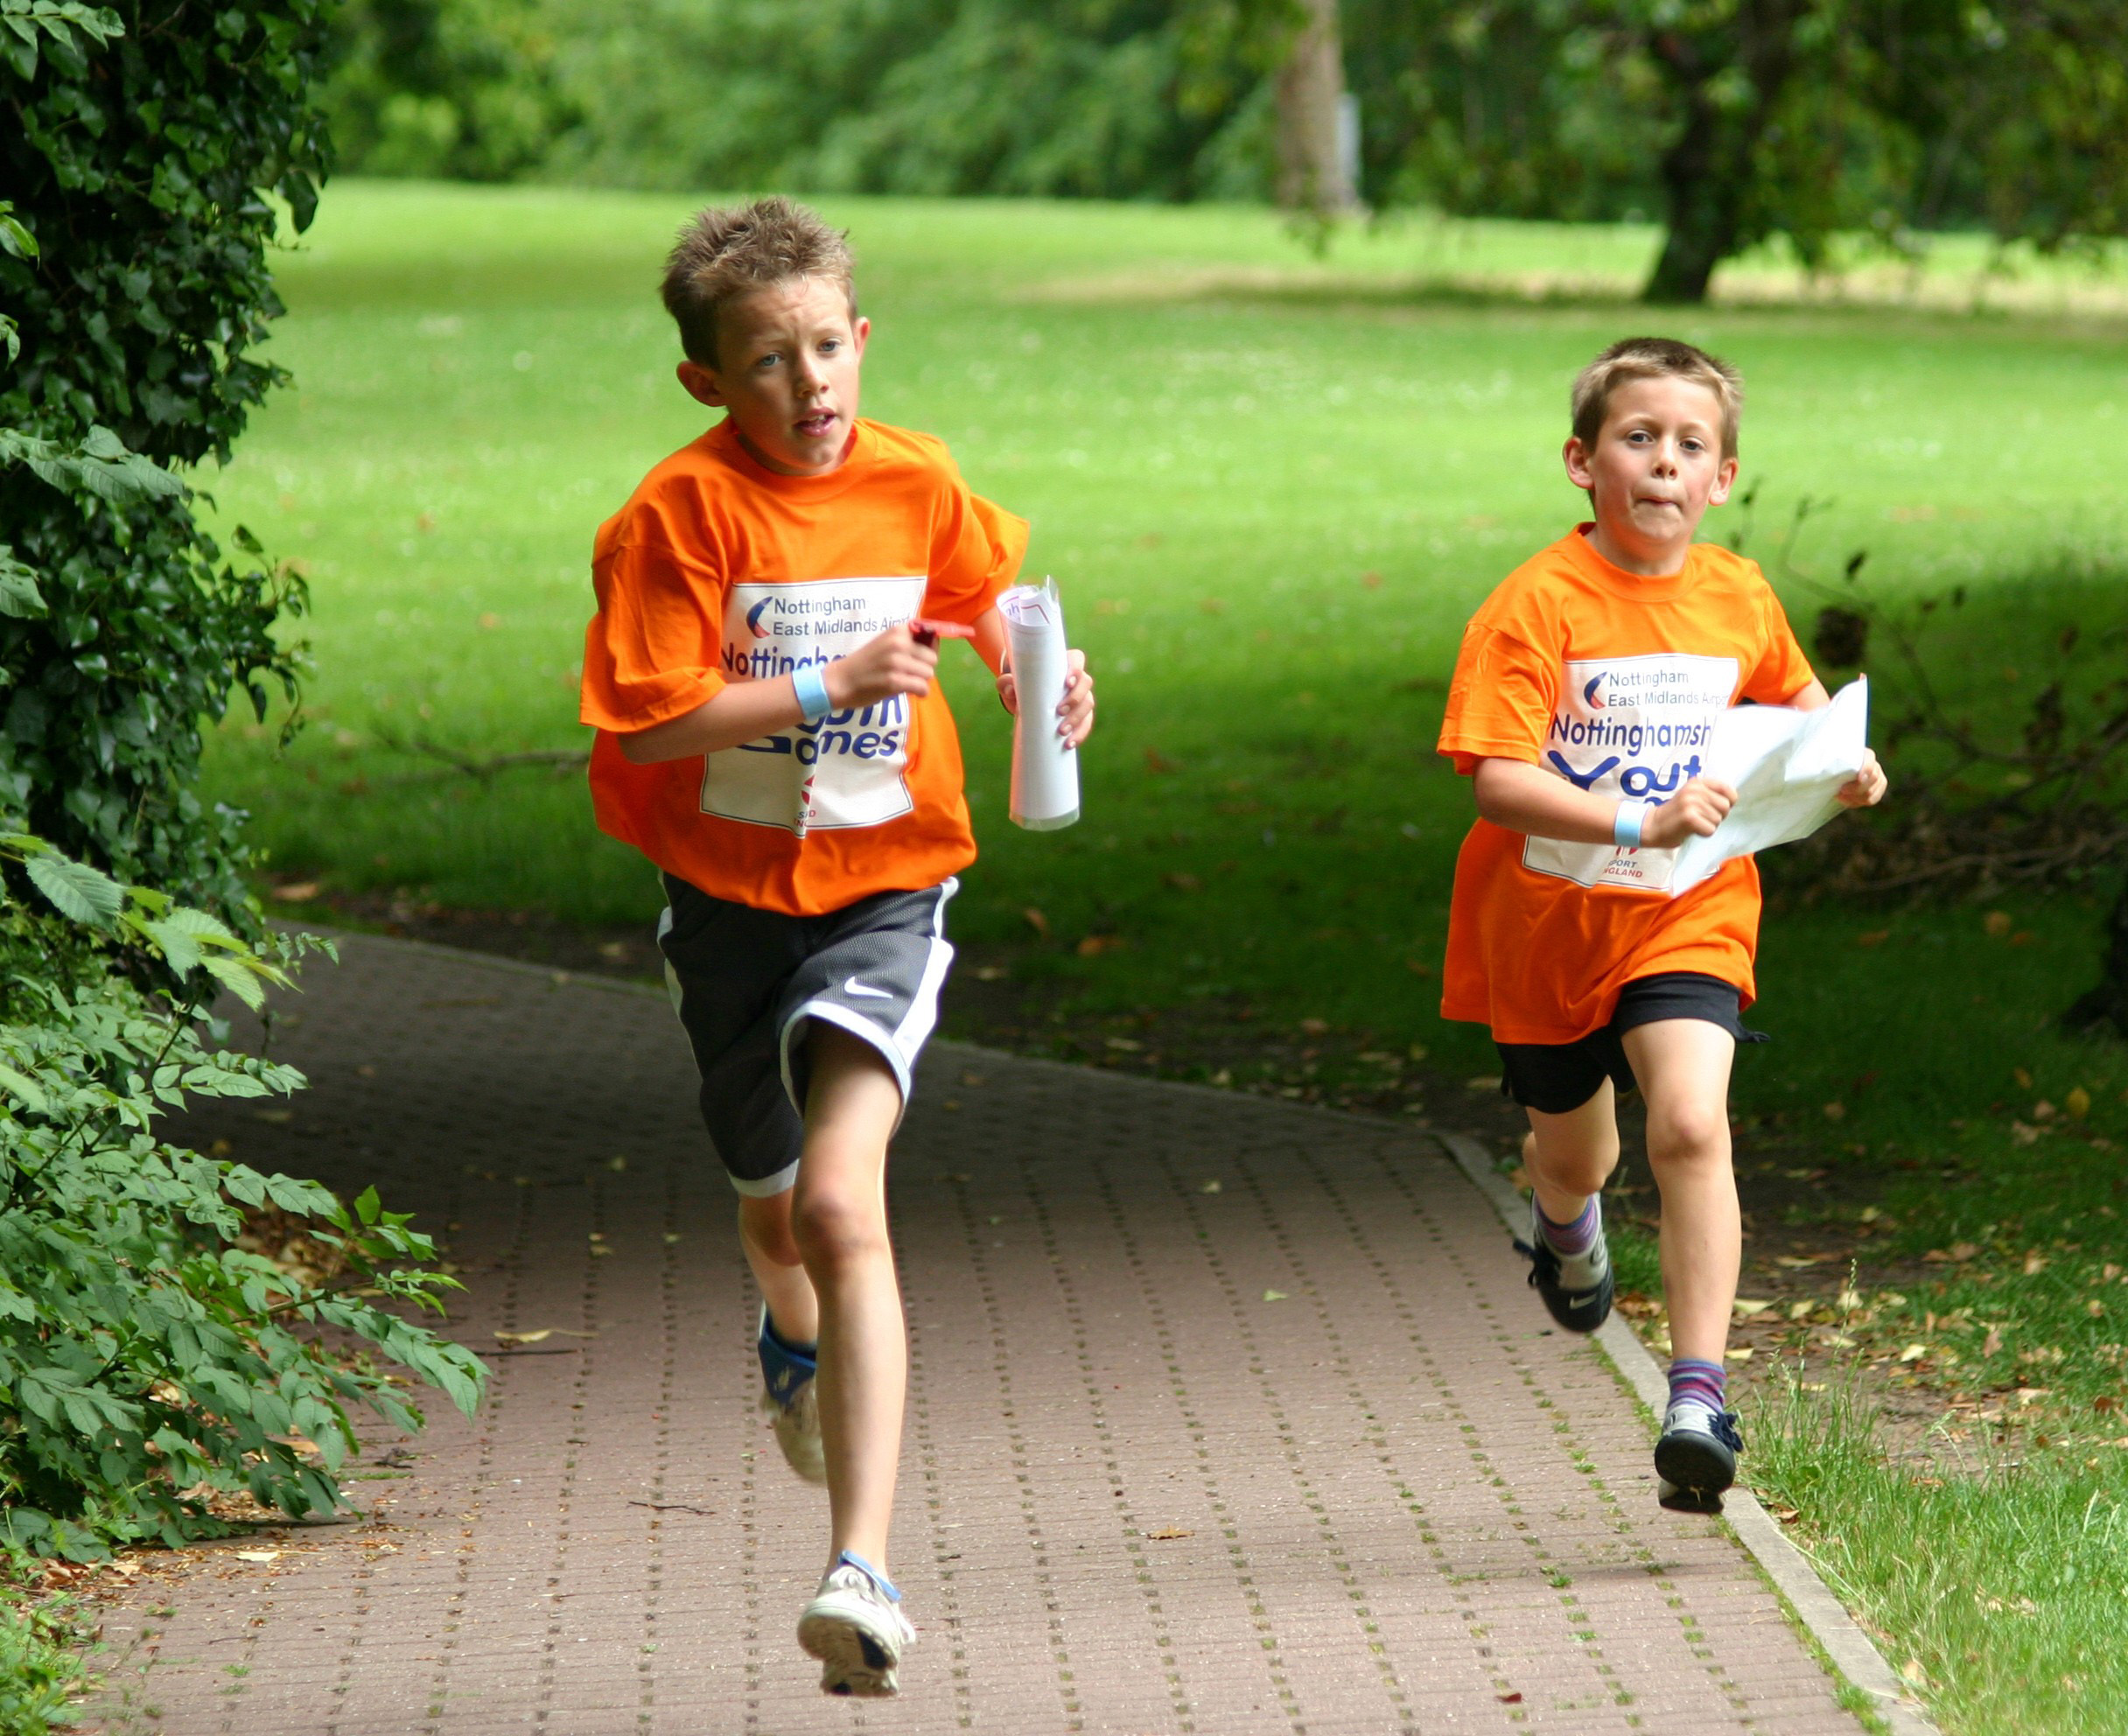 Two primary school aged boys running along a path